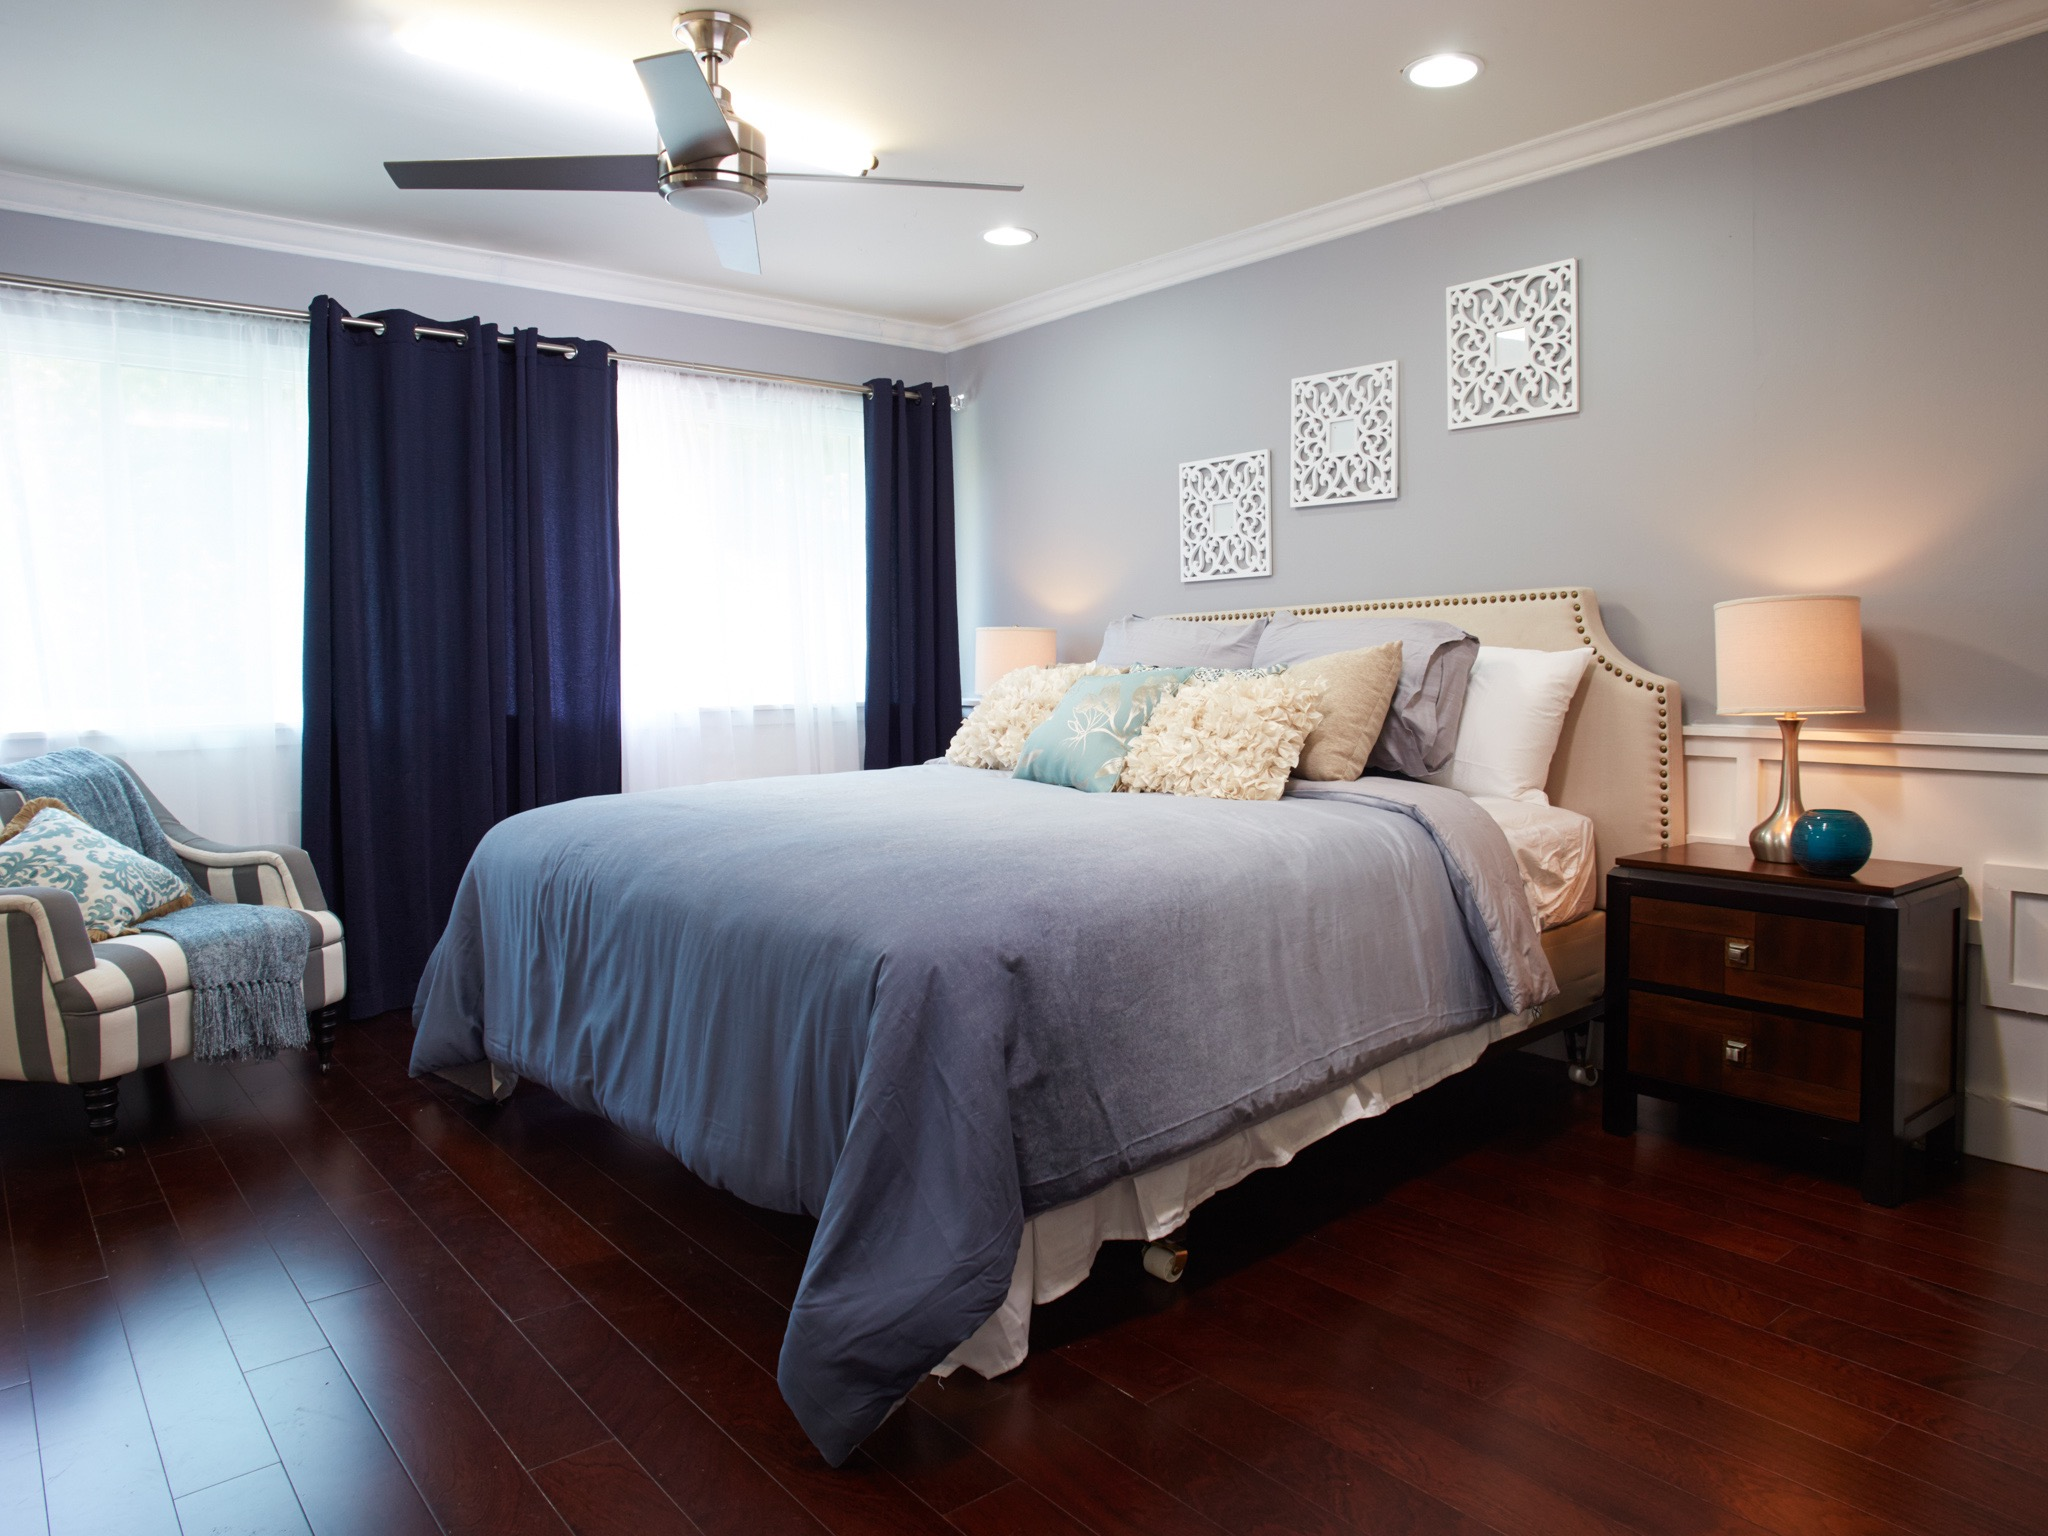 Blue Master Bedroom With Modern And Traditional Accents (Image 4 of 28)